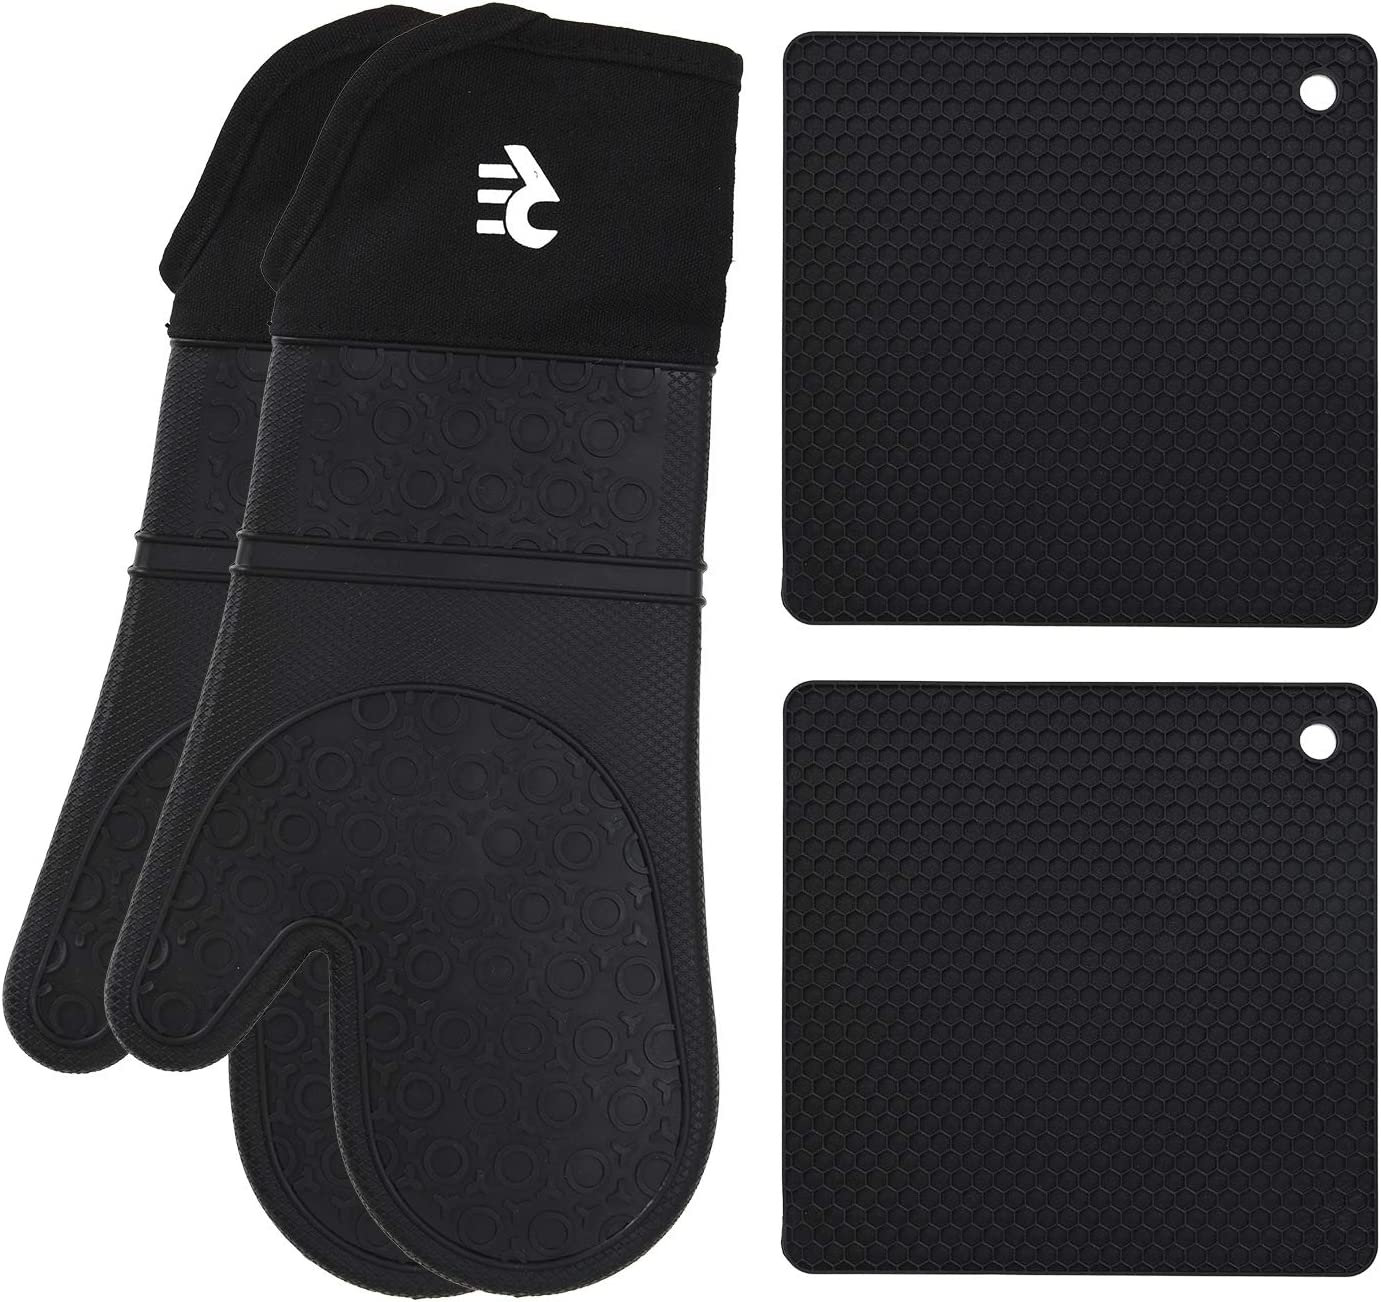 Rodri Essentials Extra Long Professional Silicon Kitchen Oven Mitts with Quilted Liner. (Black)